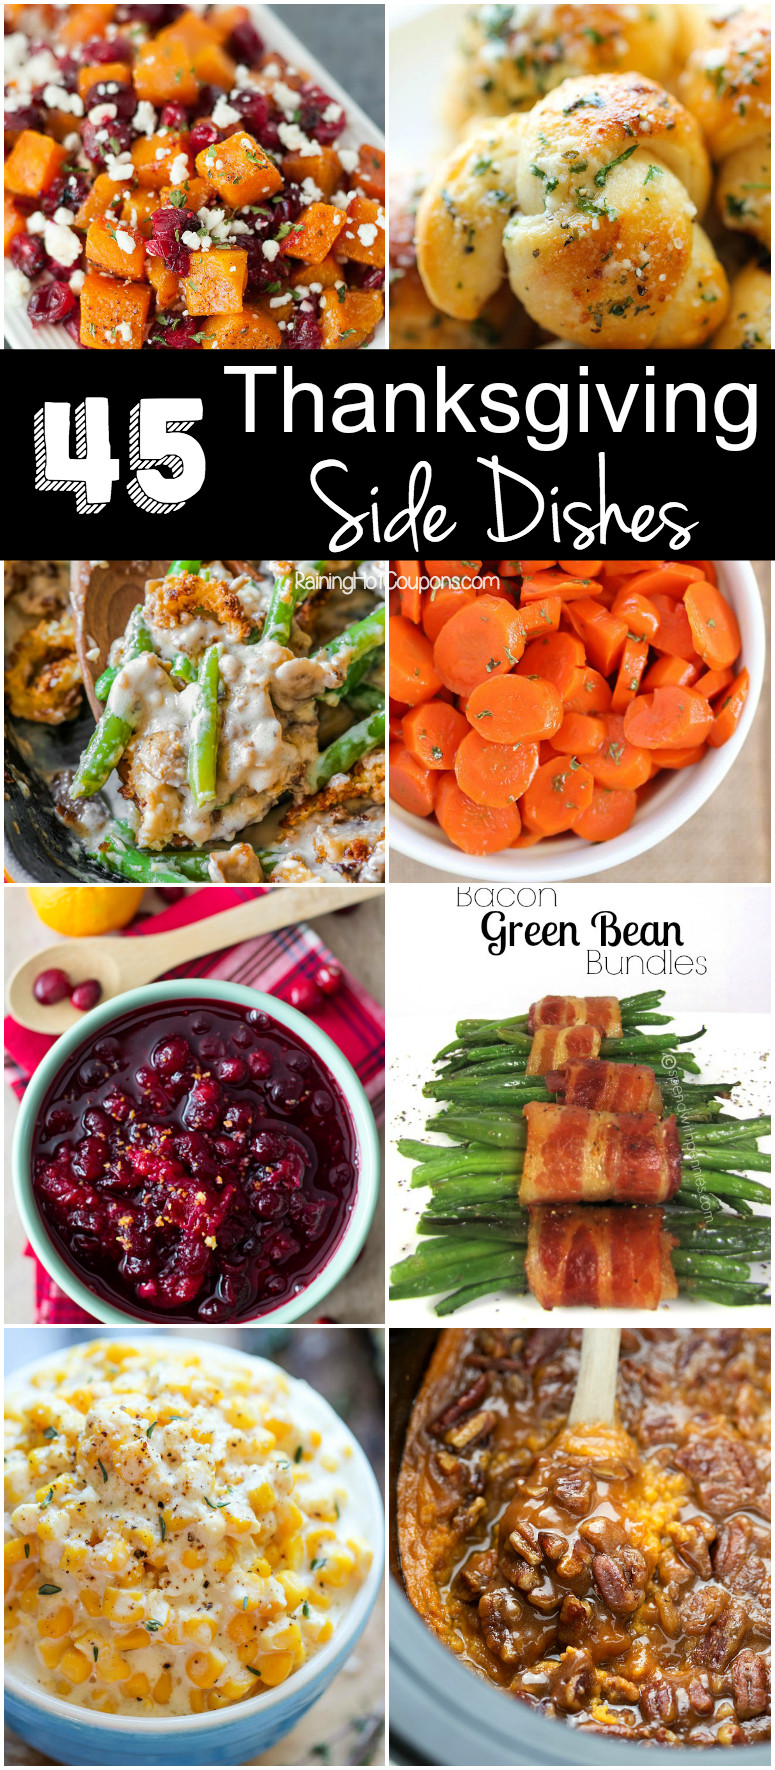 Side Dishes For Thanksgiving Turkey Dinner  45 Thanksgiving Side Dishes